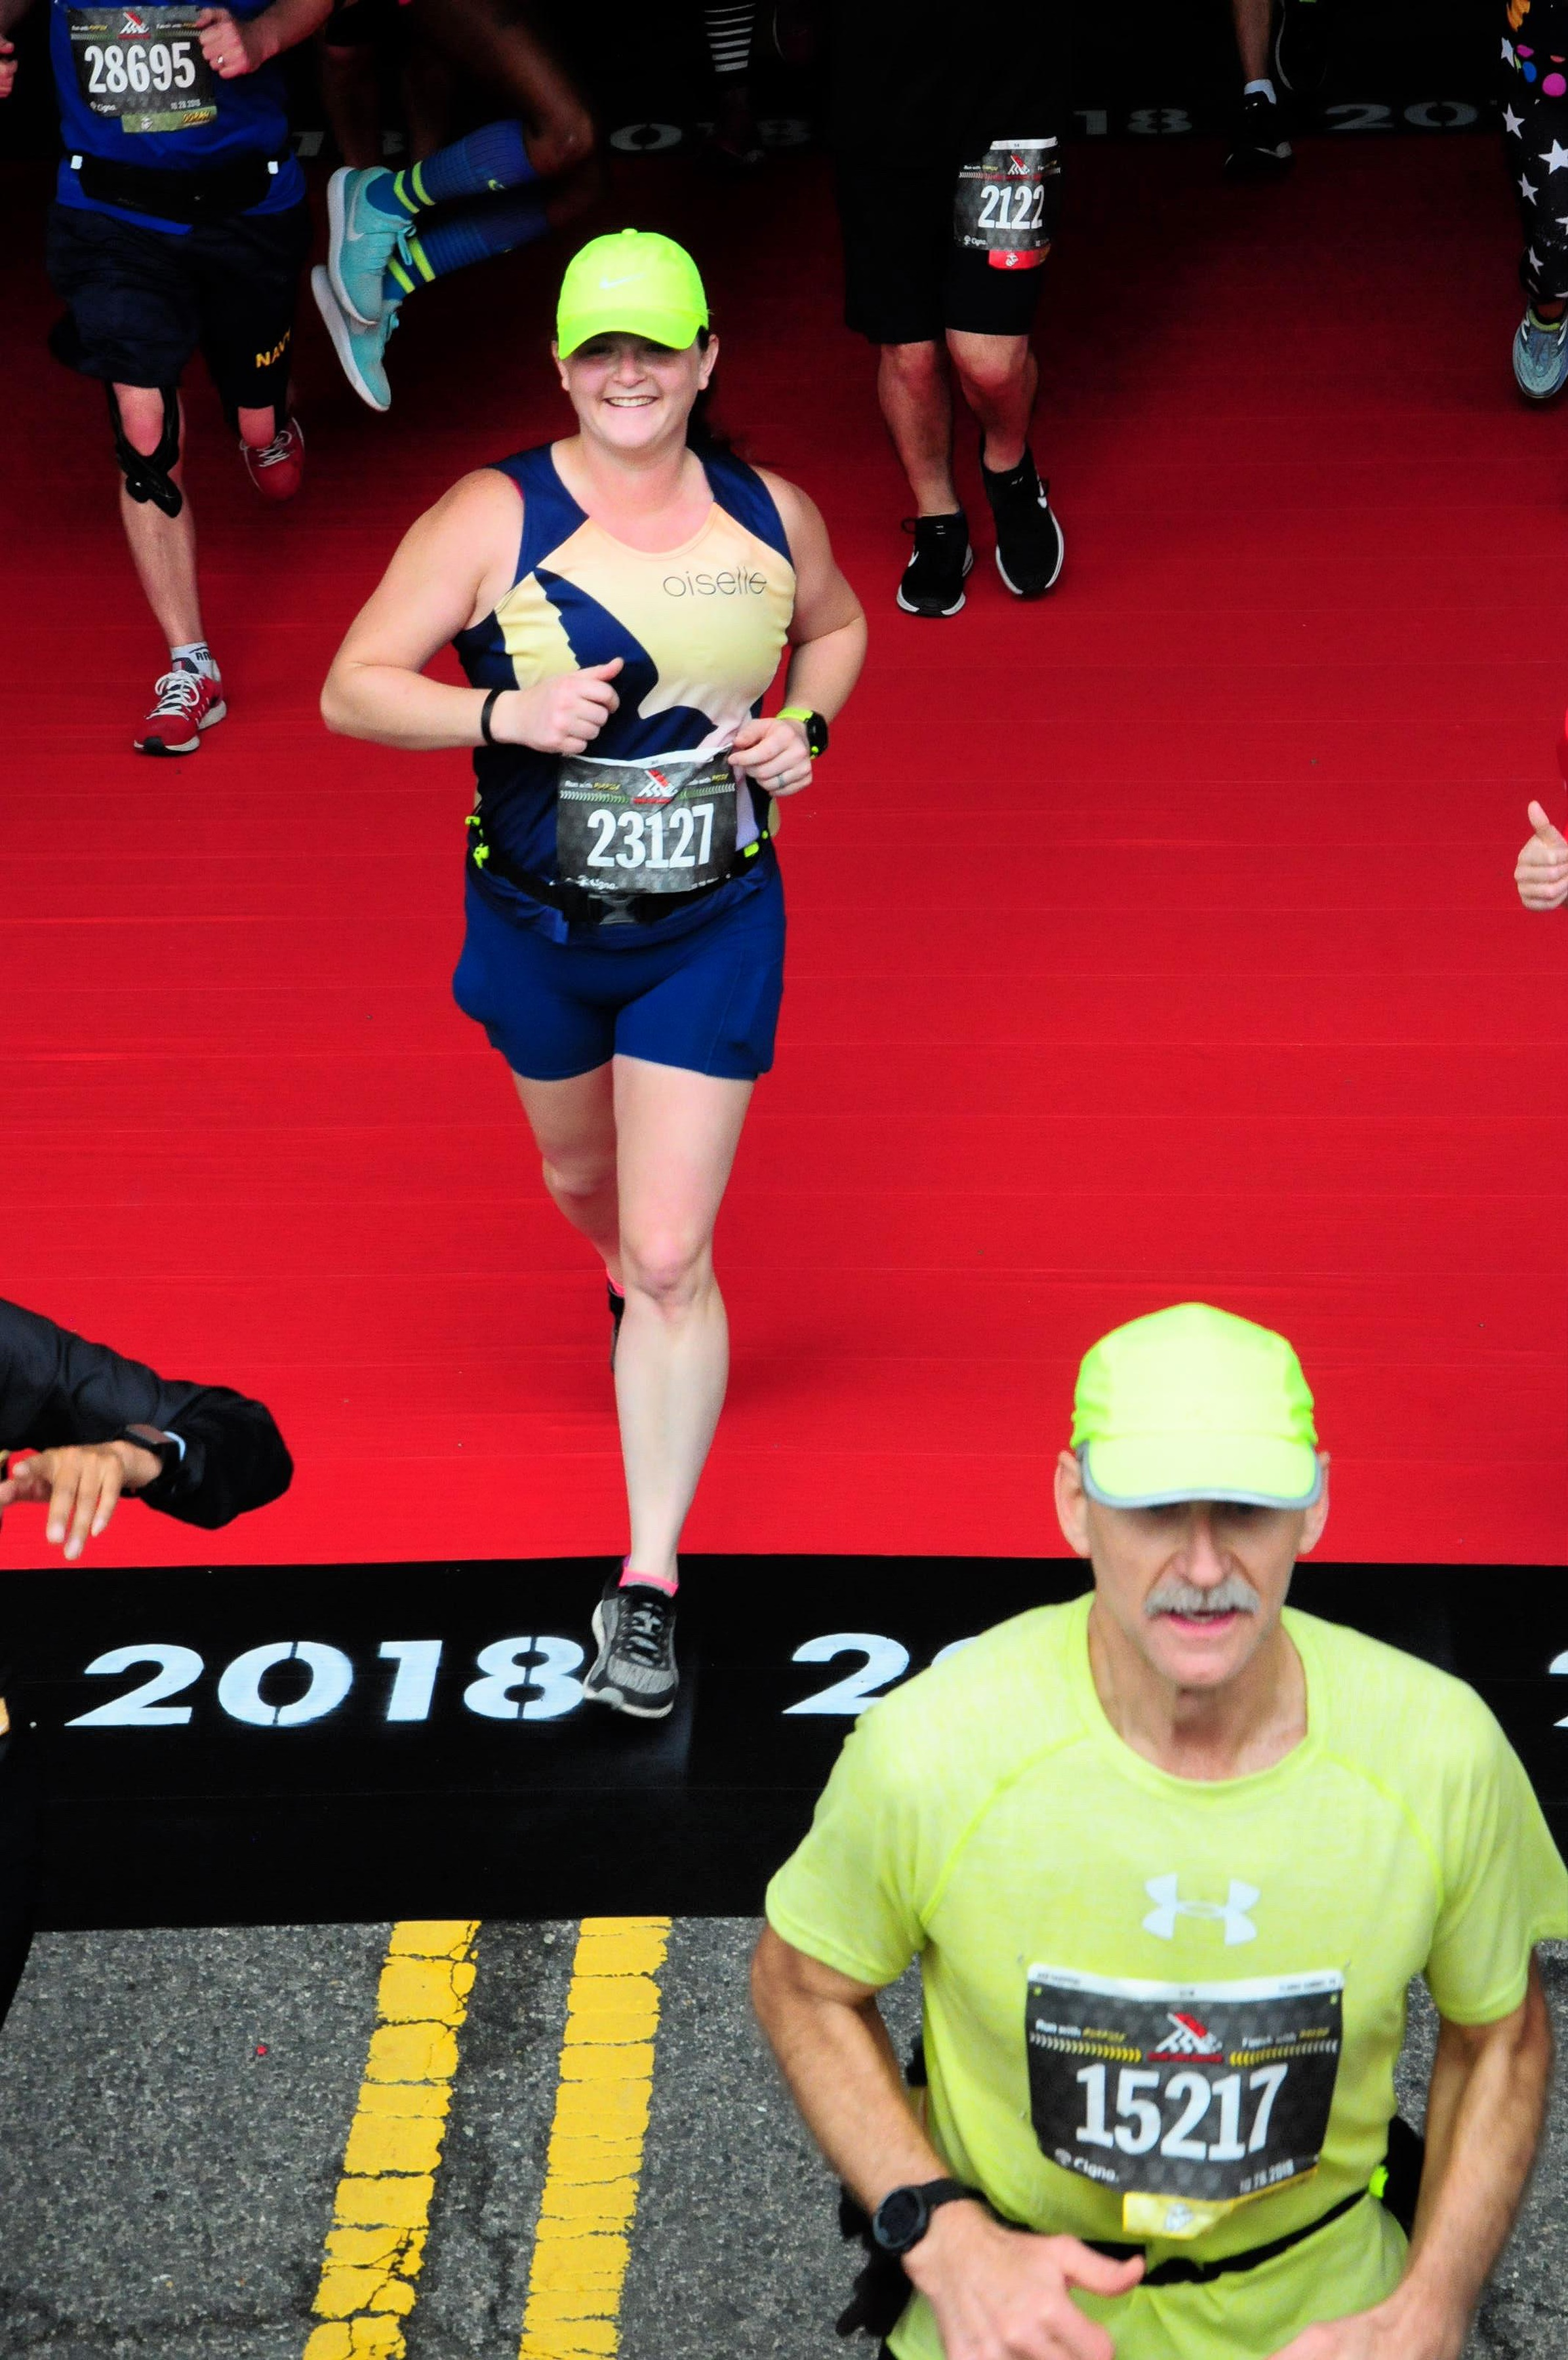 """I LOVE RUNNING!""… ""And I know for a fact there are a ton of photographers camped out here right now. SMILING!!"" (photo purchased for use from Marathon Foto). (Not the finish line photo, but I liked this photo the best from the photo package)"